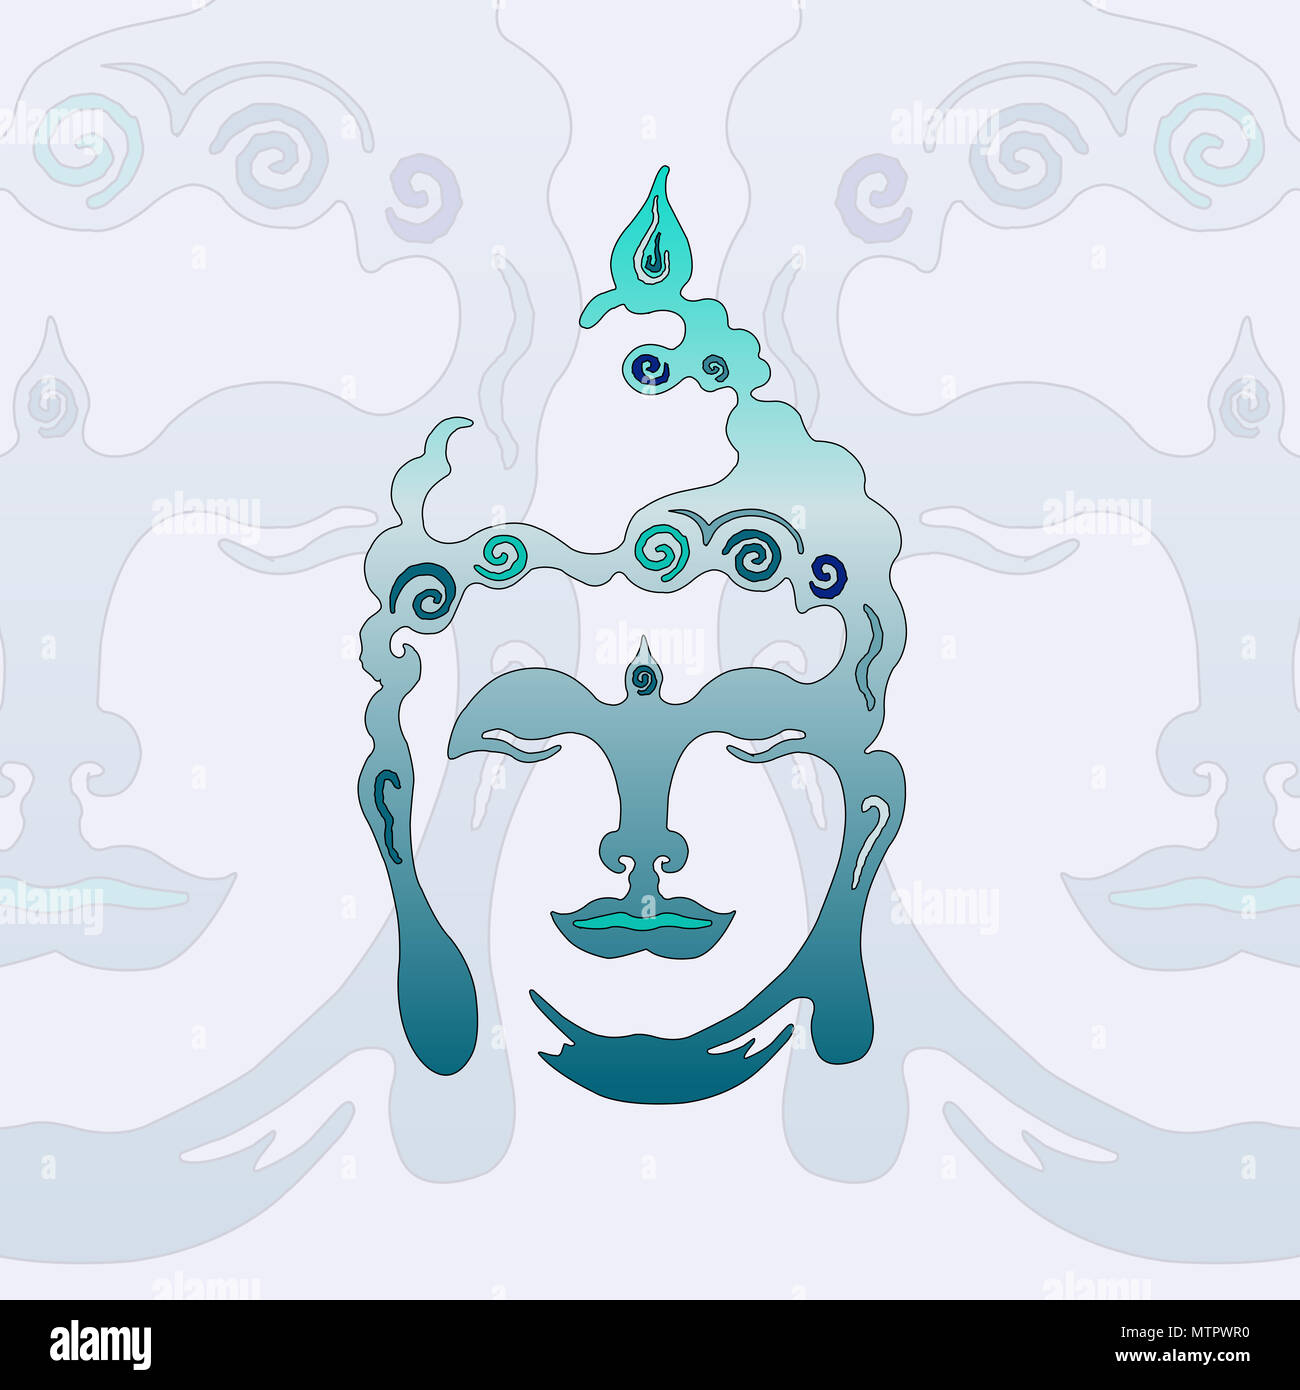 Illustration Buddha Head with turquoise colors - Stock Image